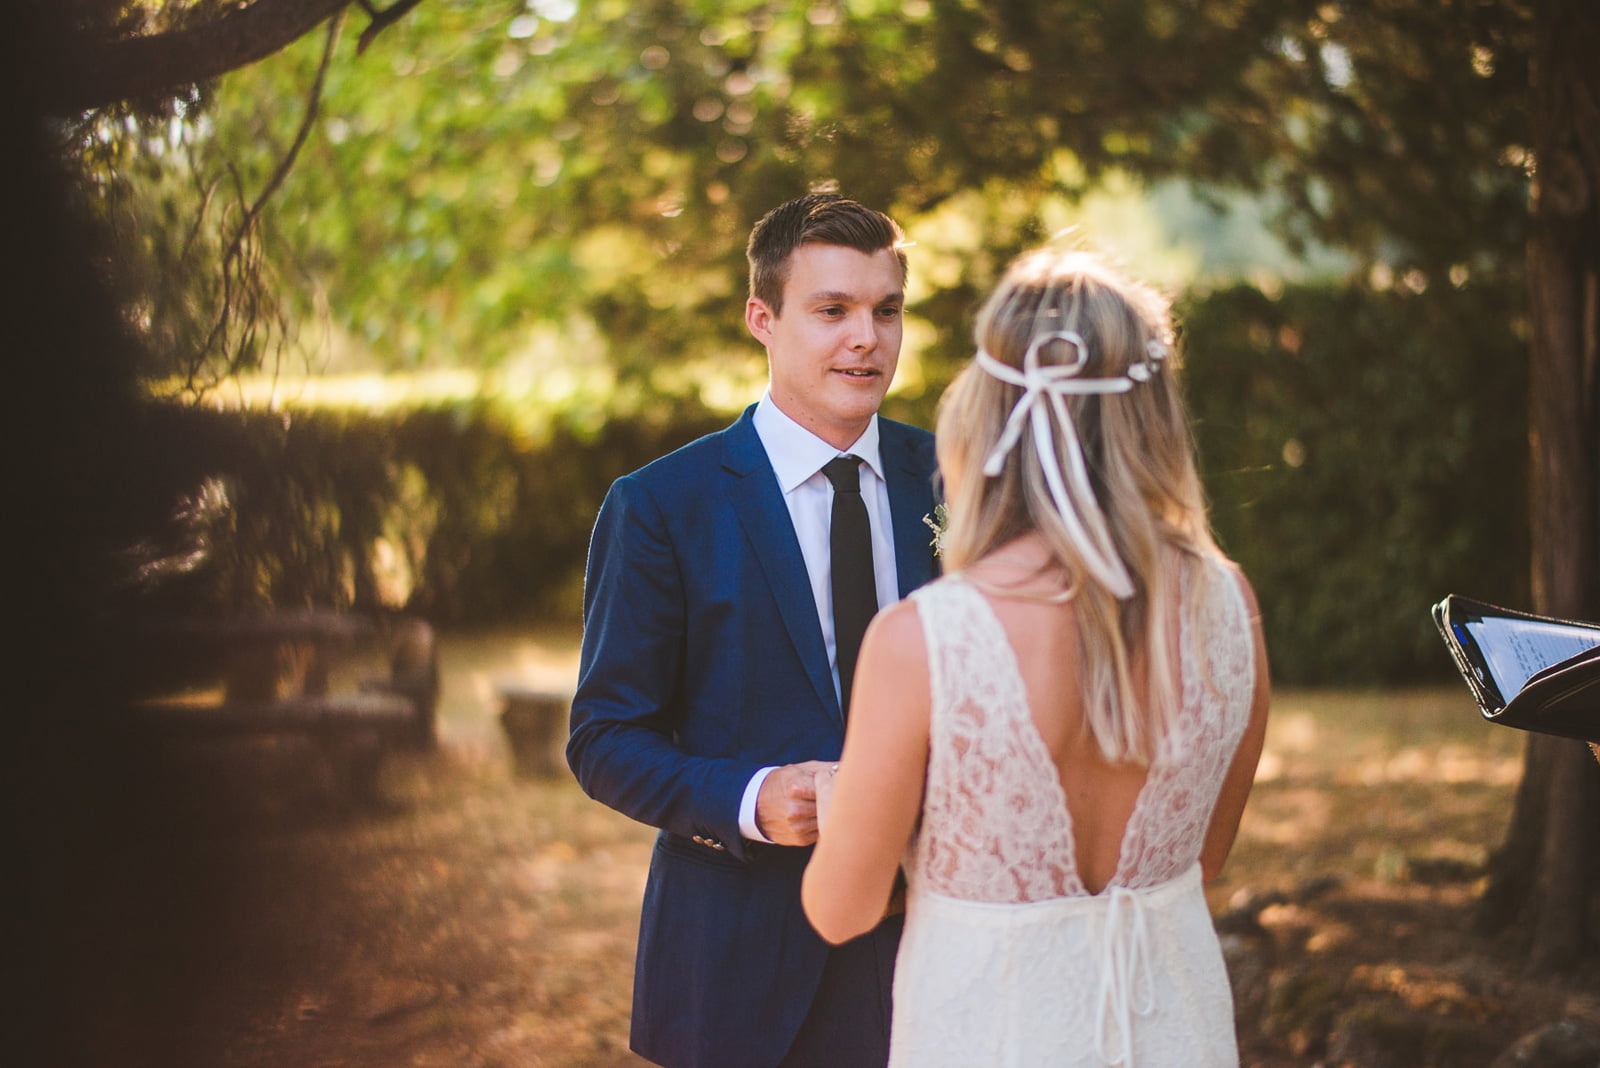 A+L Wedding at Montechiaro, Siena by Federico Pannacci 55